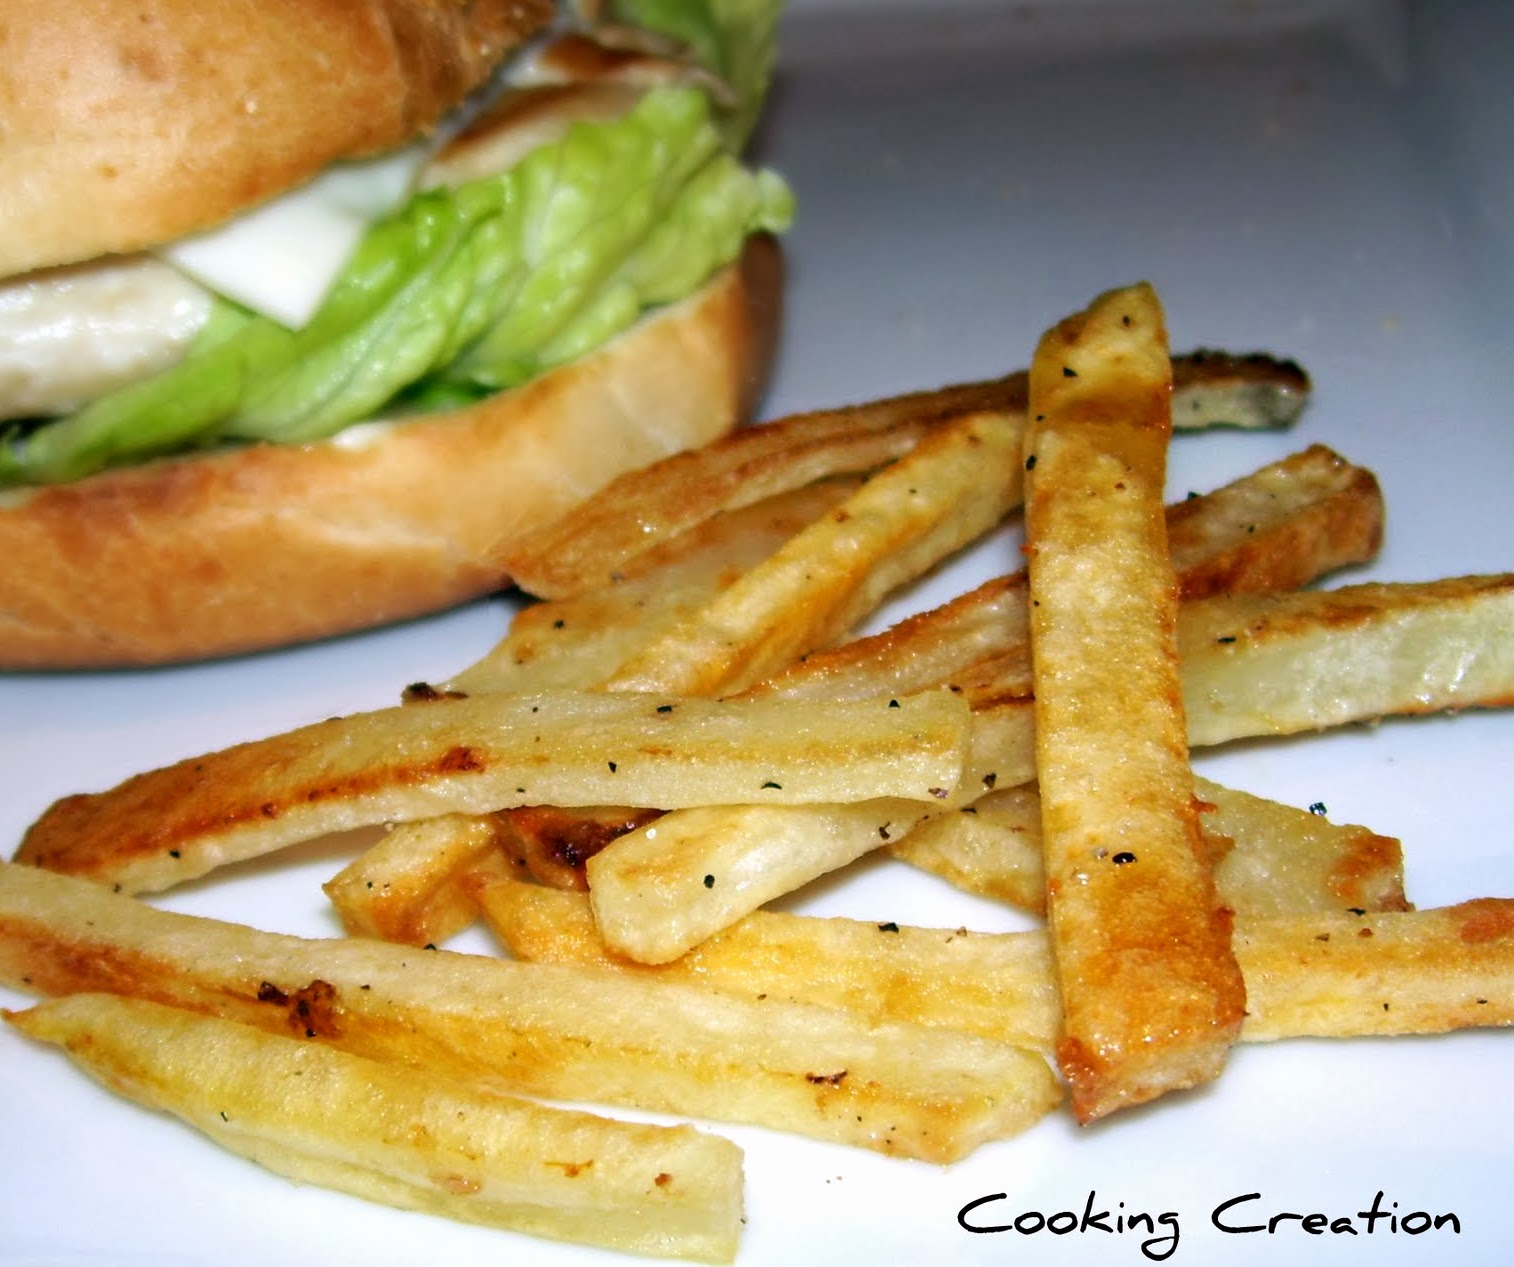 Cooking Creation: Homemade Baked French Fries